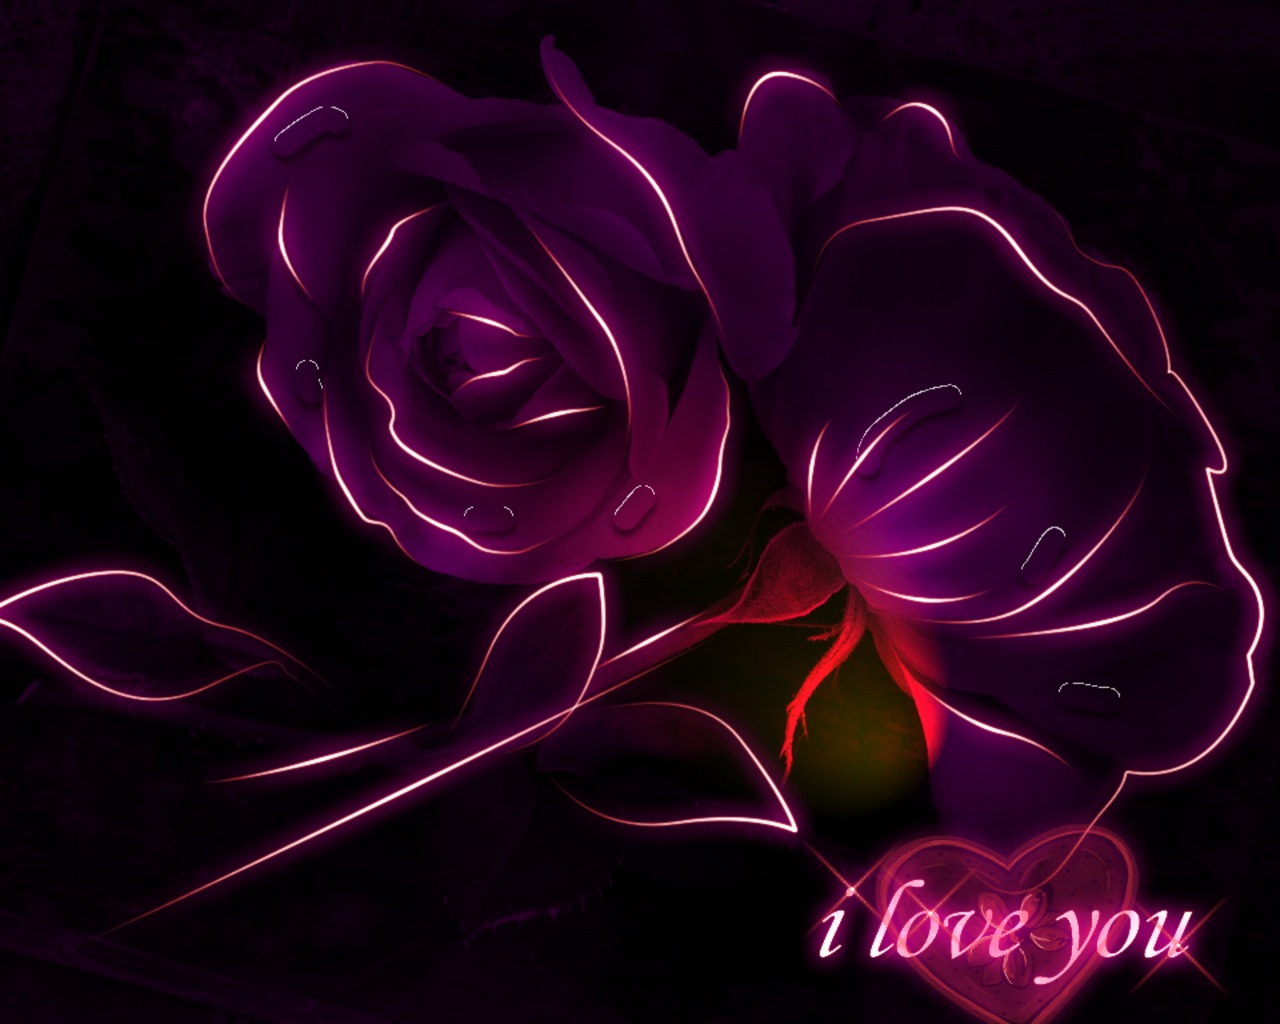 L Love You Wallpapers : I love You : wallpaper, fond d ?cran, image, photo